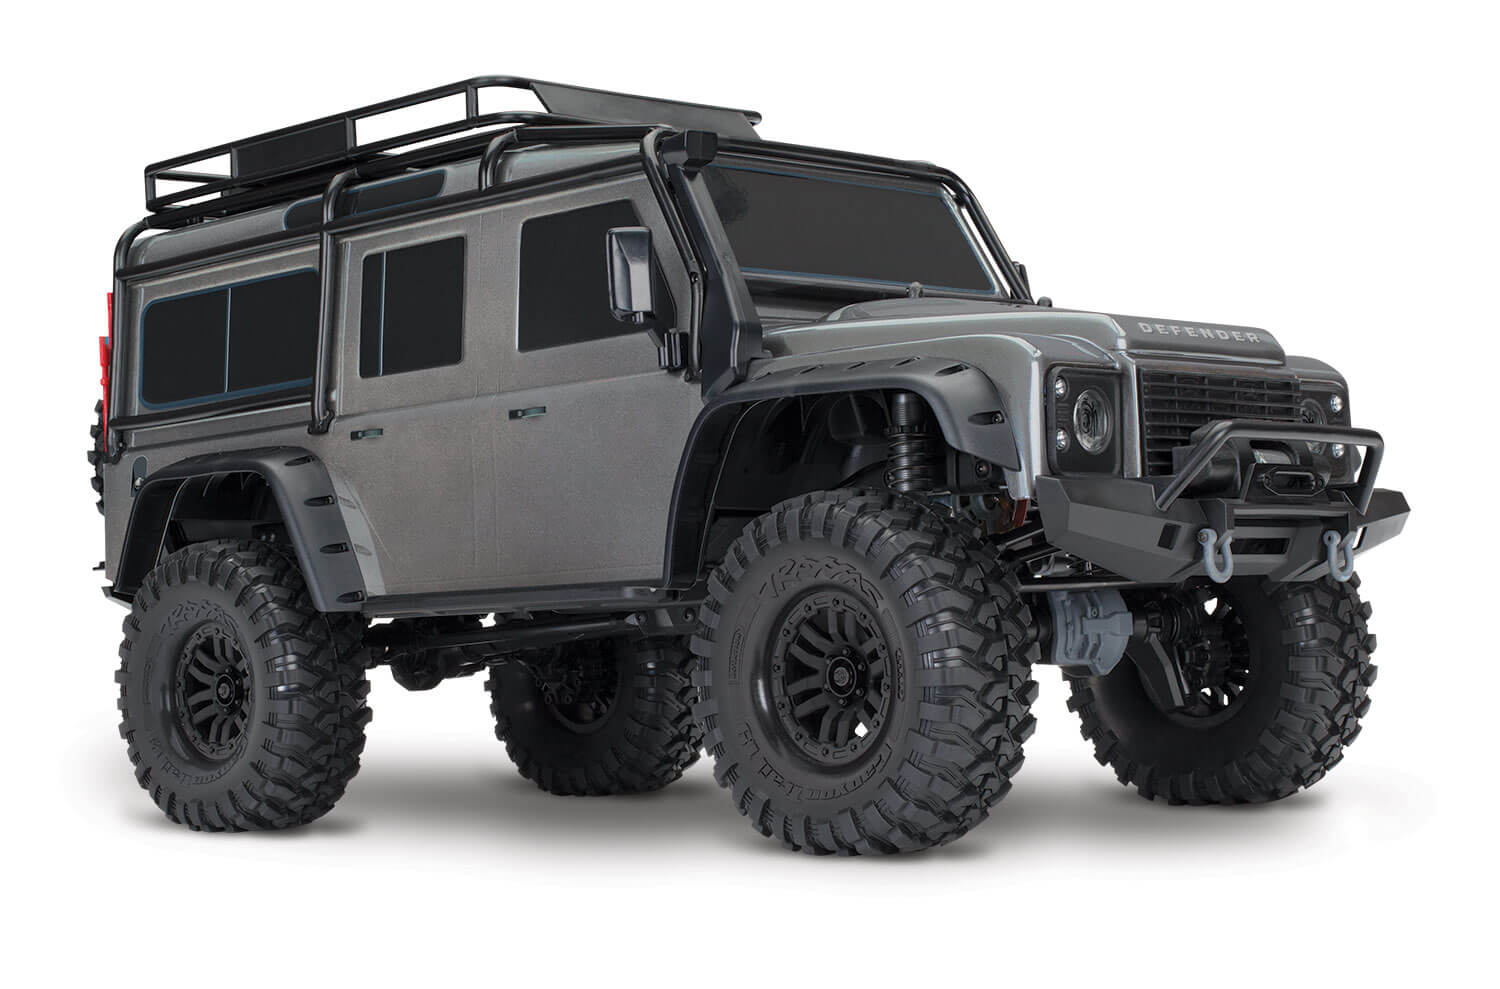 remote control trucks 4x4 with Traxxas Trx 4 Crawler Land Rover Defender 110 on Rc 4x4 Jeep For Sale besides Silver Lifted 2015 Chevy Silverado 1500 In Gainesville furthermore 261799404849 further Watch together with Watch.